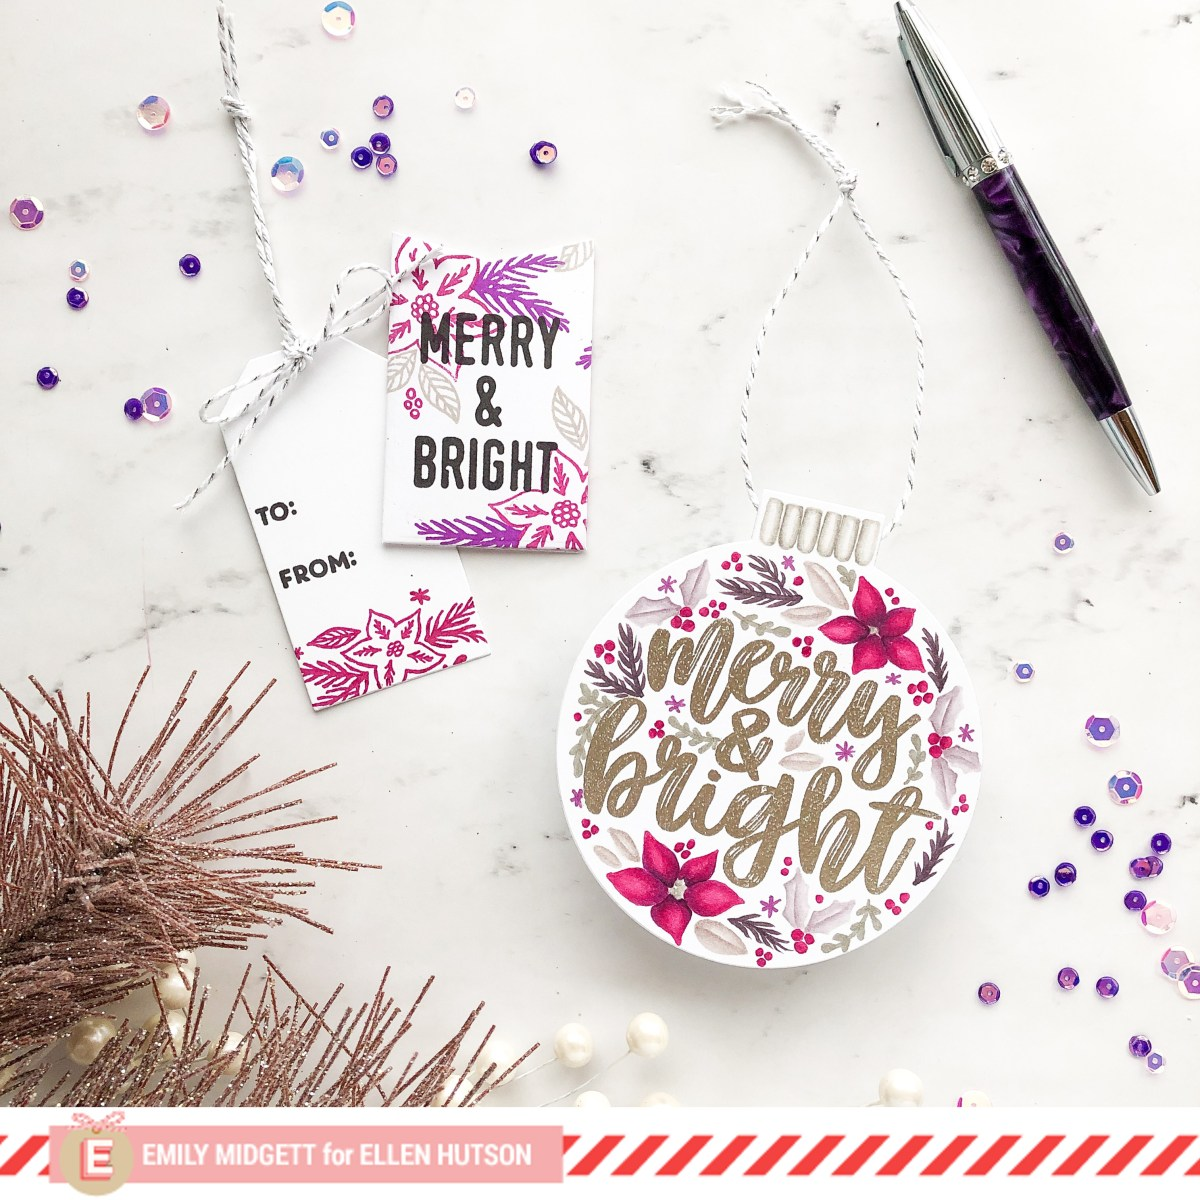 12 Feminine Tags of Christmas, Concord and 9th Style!